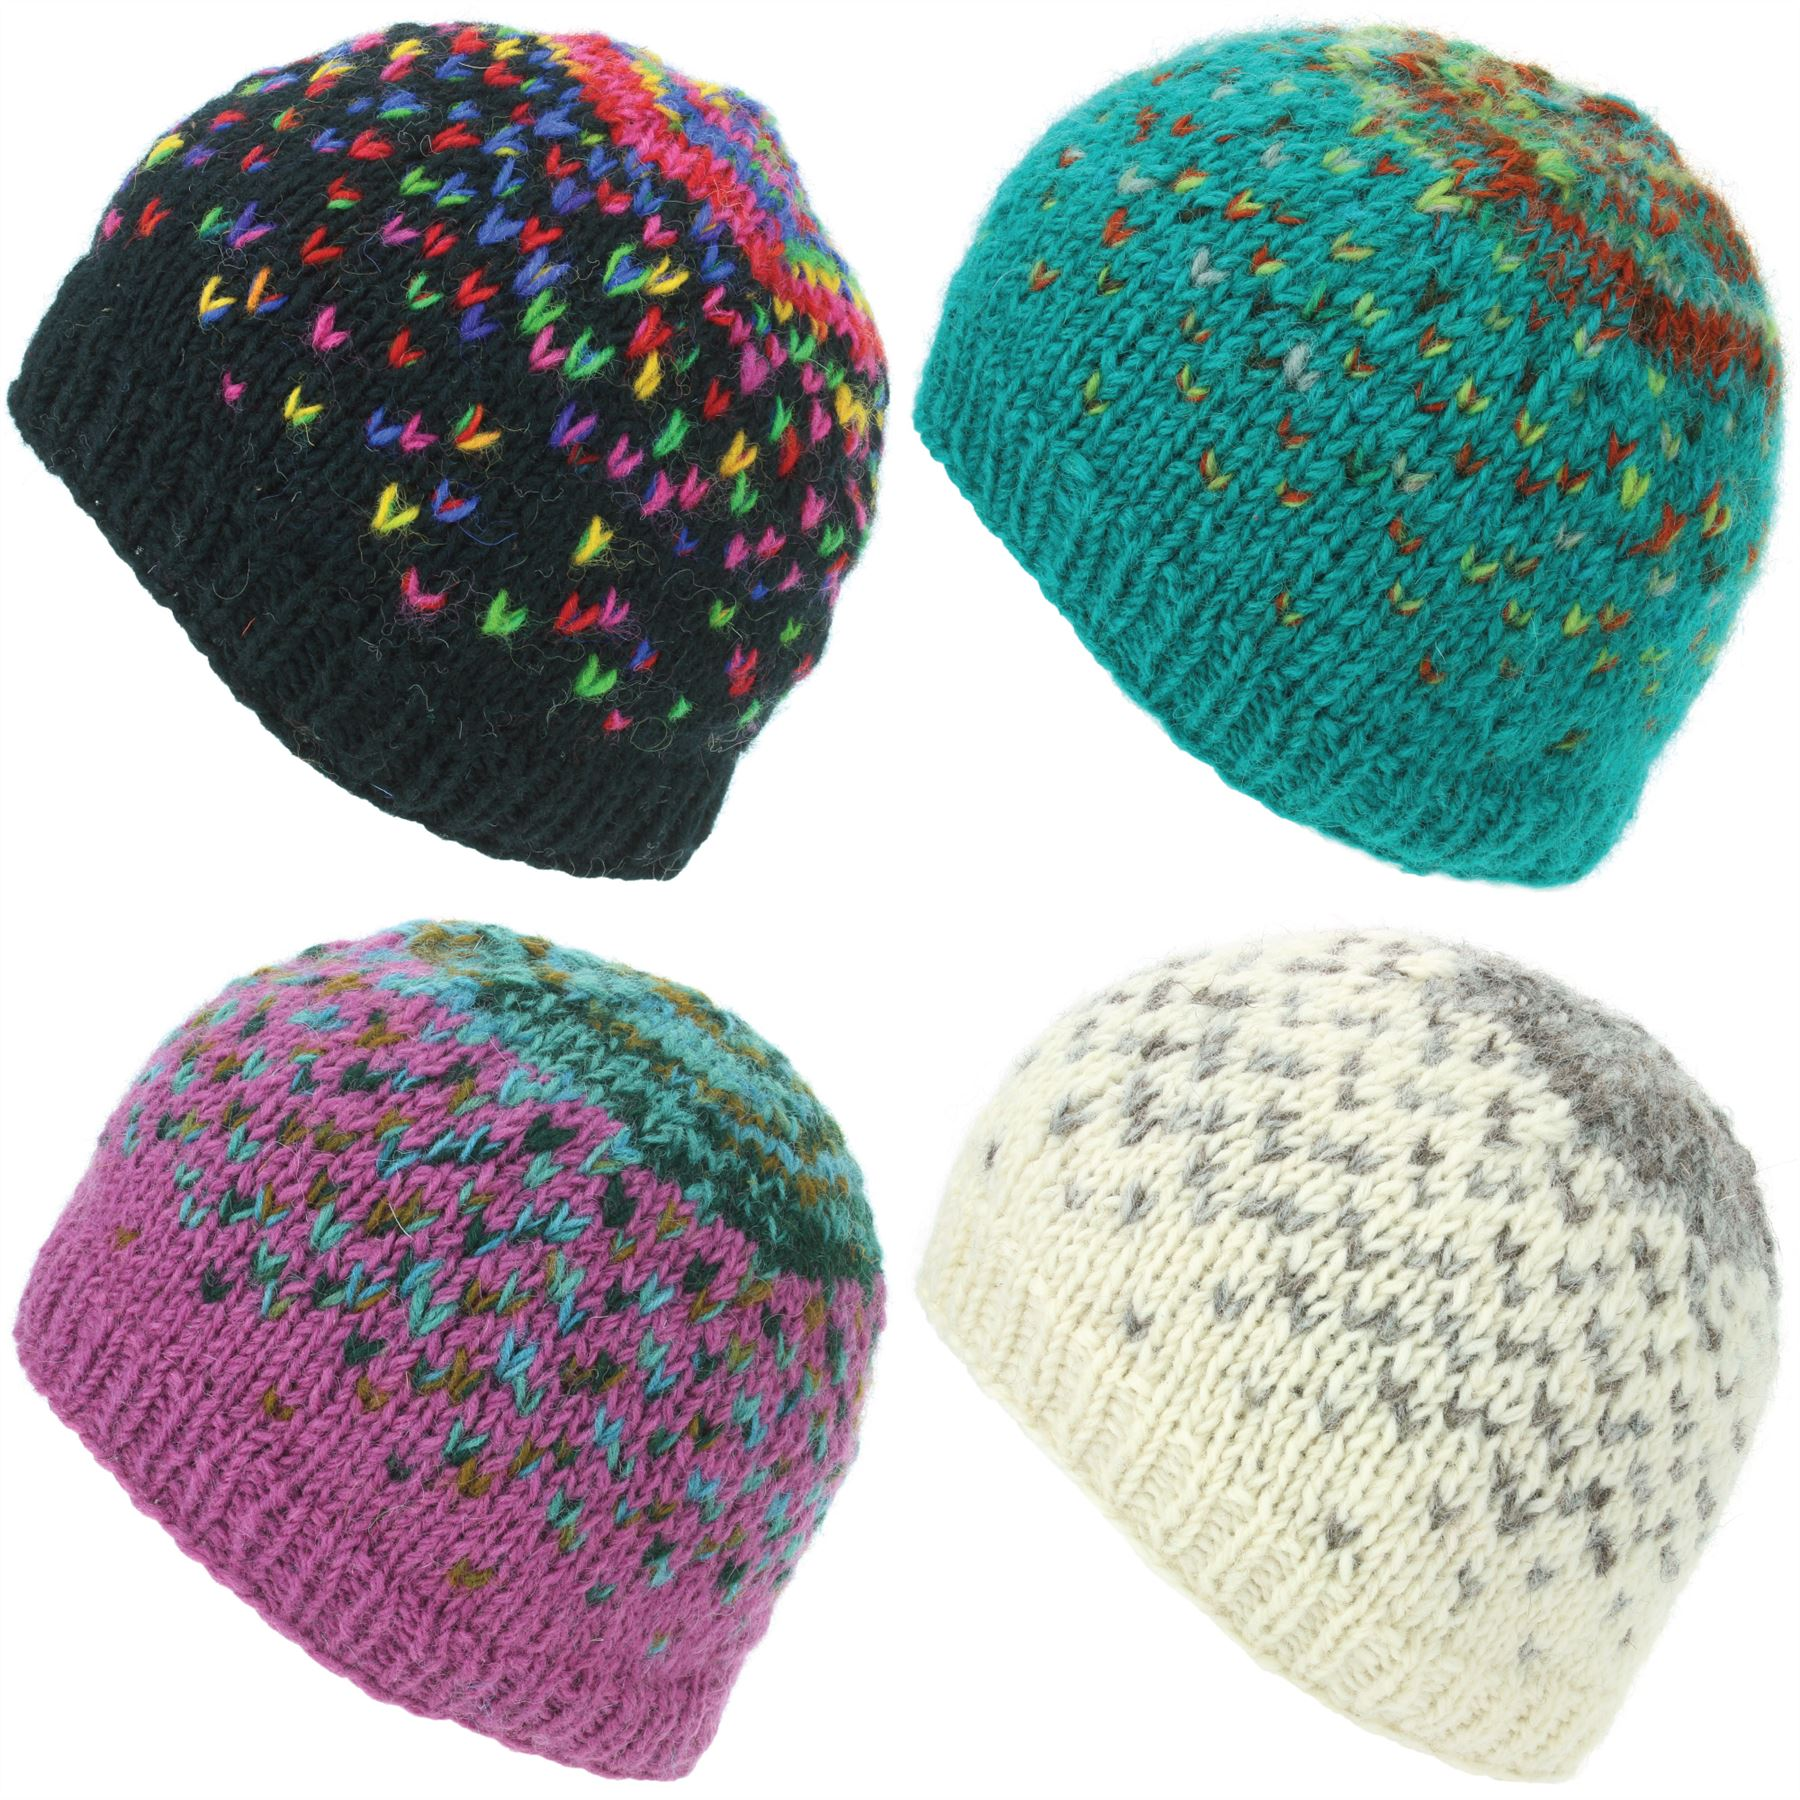 Details about Beanie Hat Wool Cap Warm Winter Colourful Soft Lined  LoudElephant Knit Ski 9723ea09e59